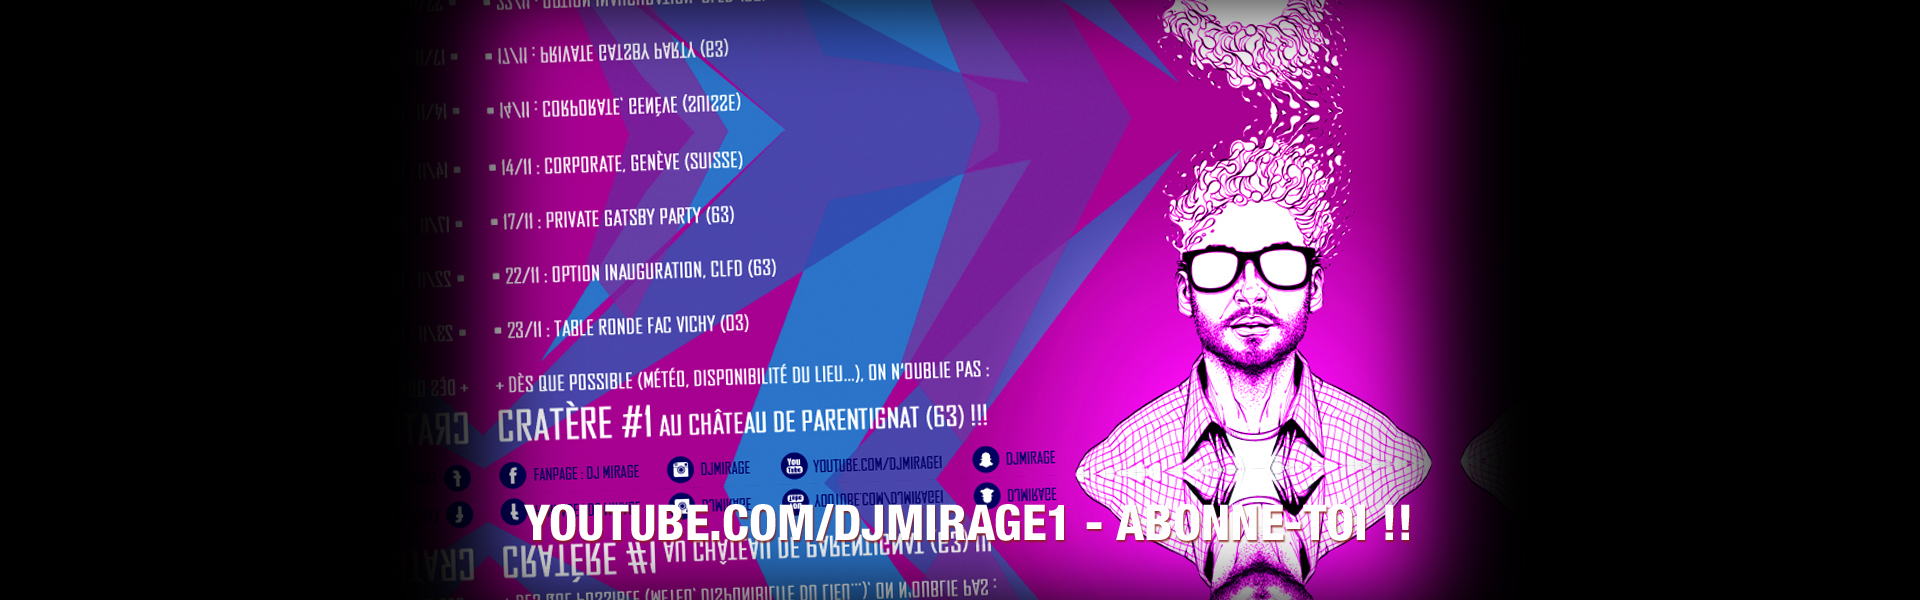 http://djmirage.fr/wp-content/uploads/2016/10/slider-accueil-deejaymirage-nov18.jpg